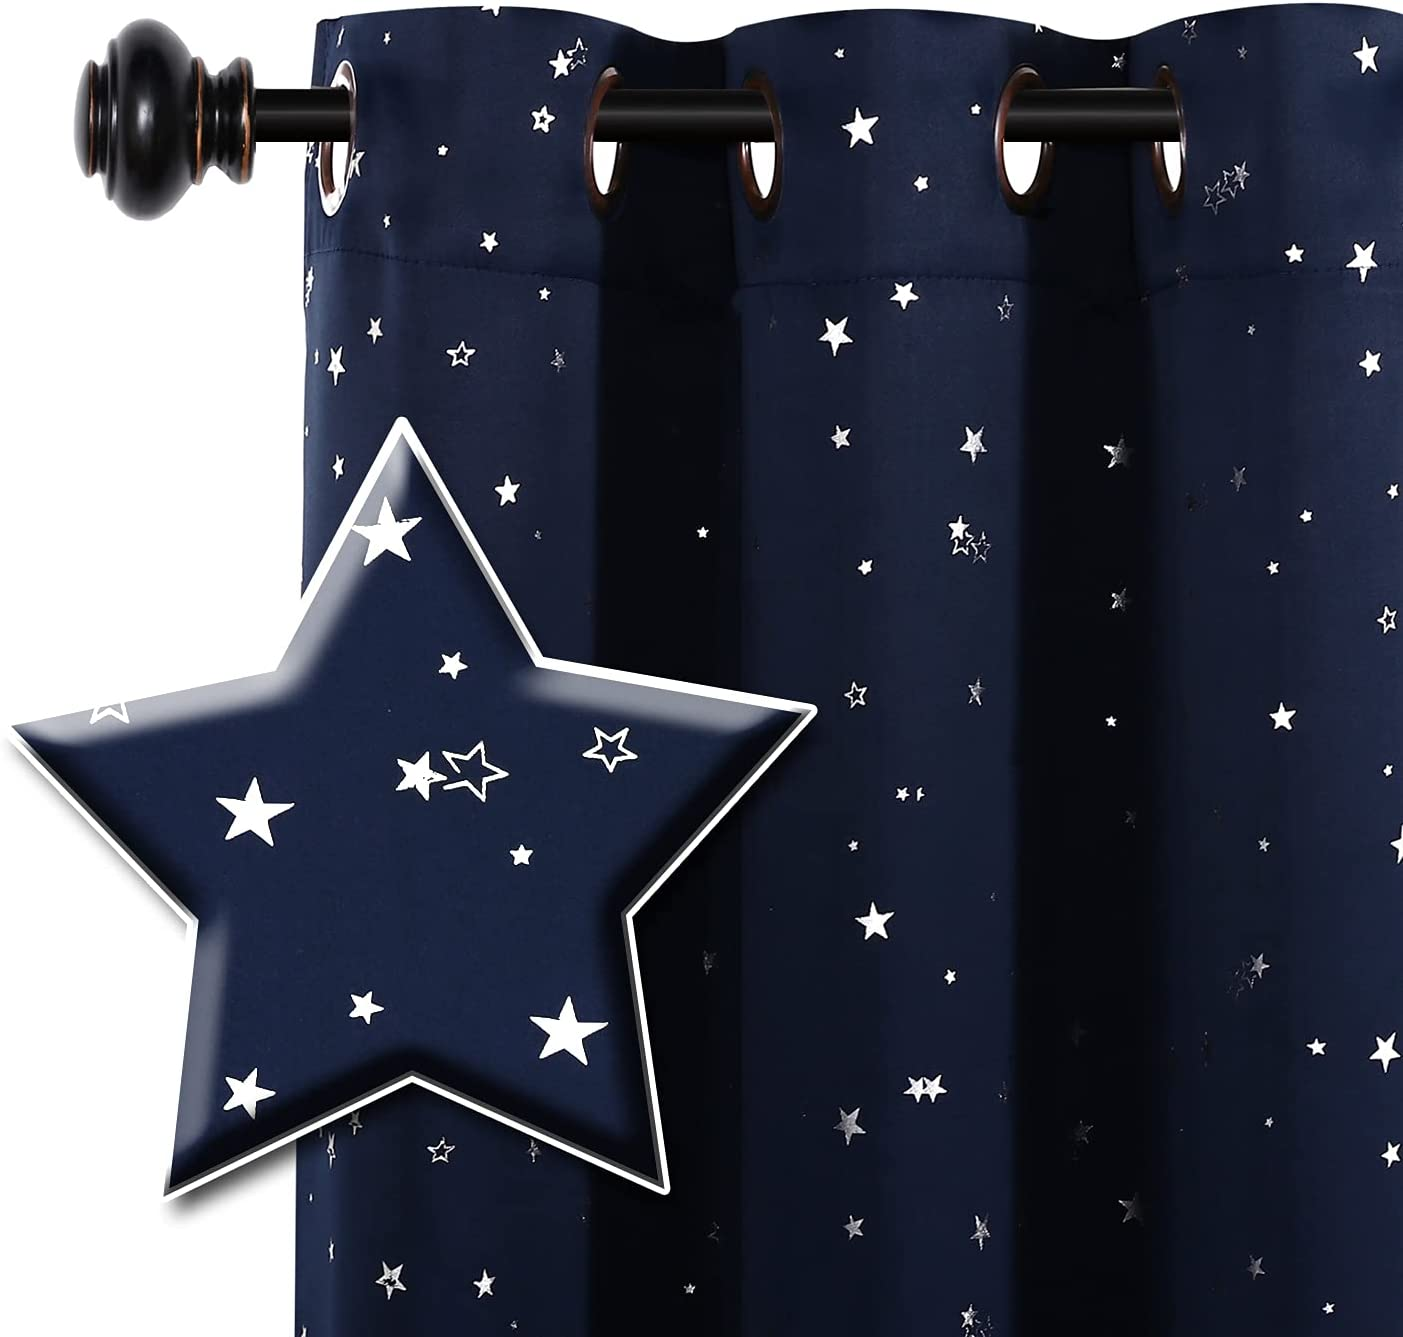 H.VERSAILTEX Blackout Star Curtains for Colorado Springs Mall Room New Orleans Mall Kids Twi Boys Girls